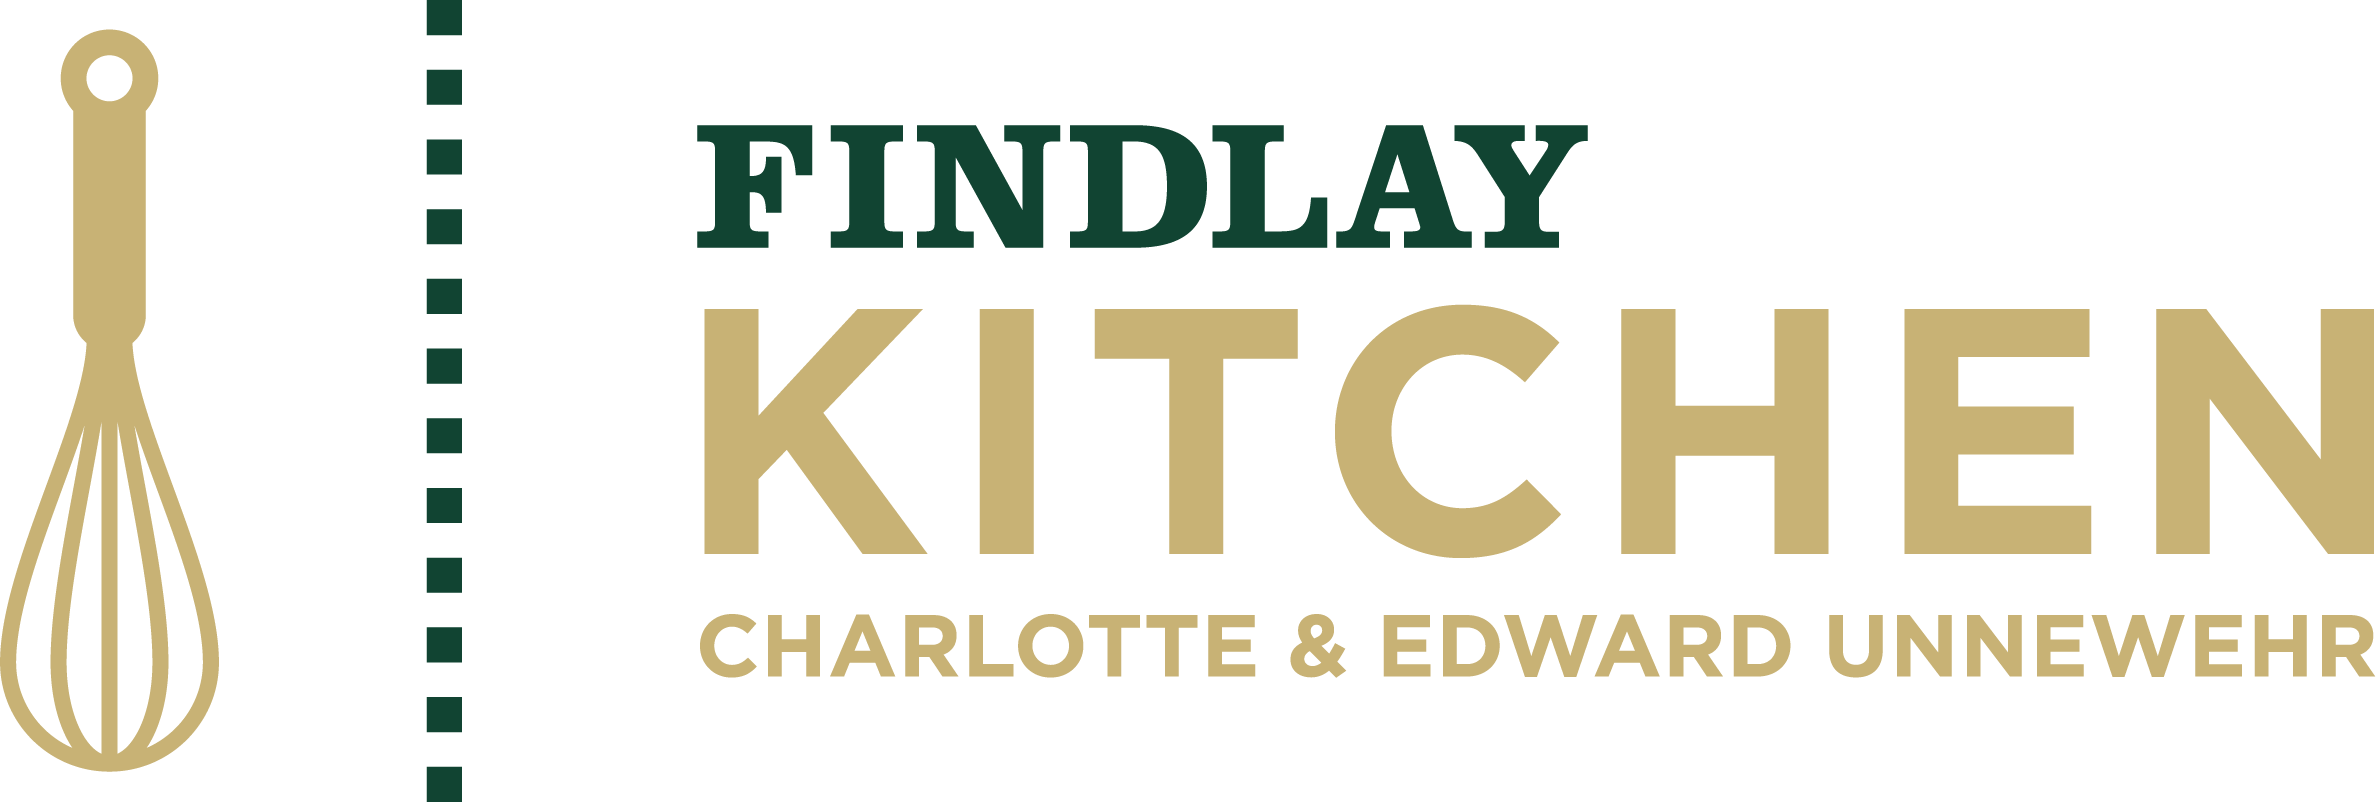 Findlay Kitchen.png